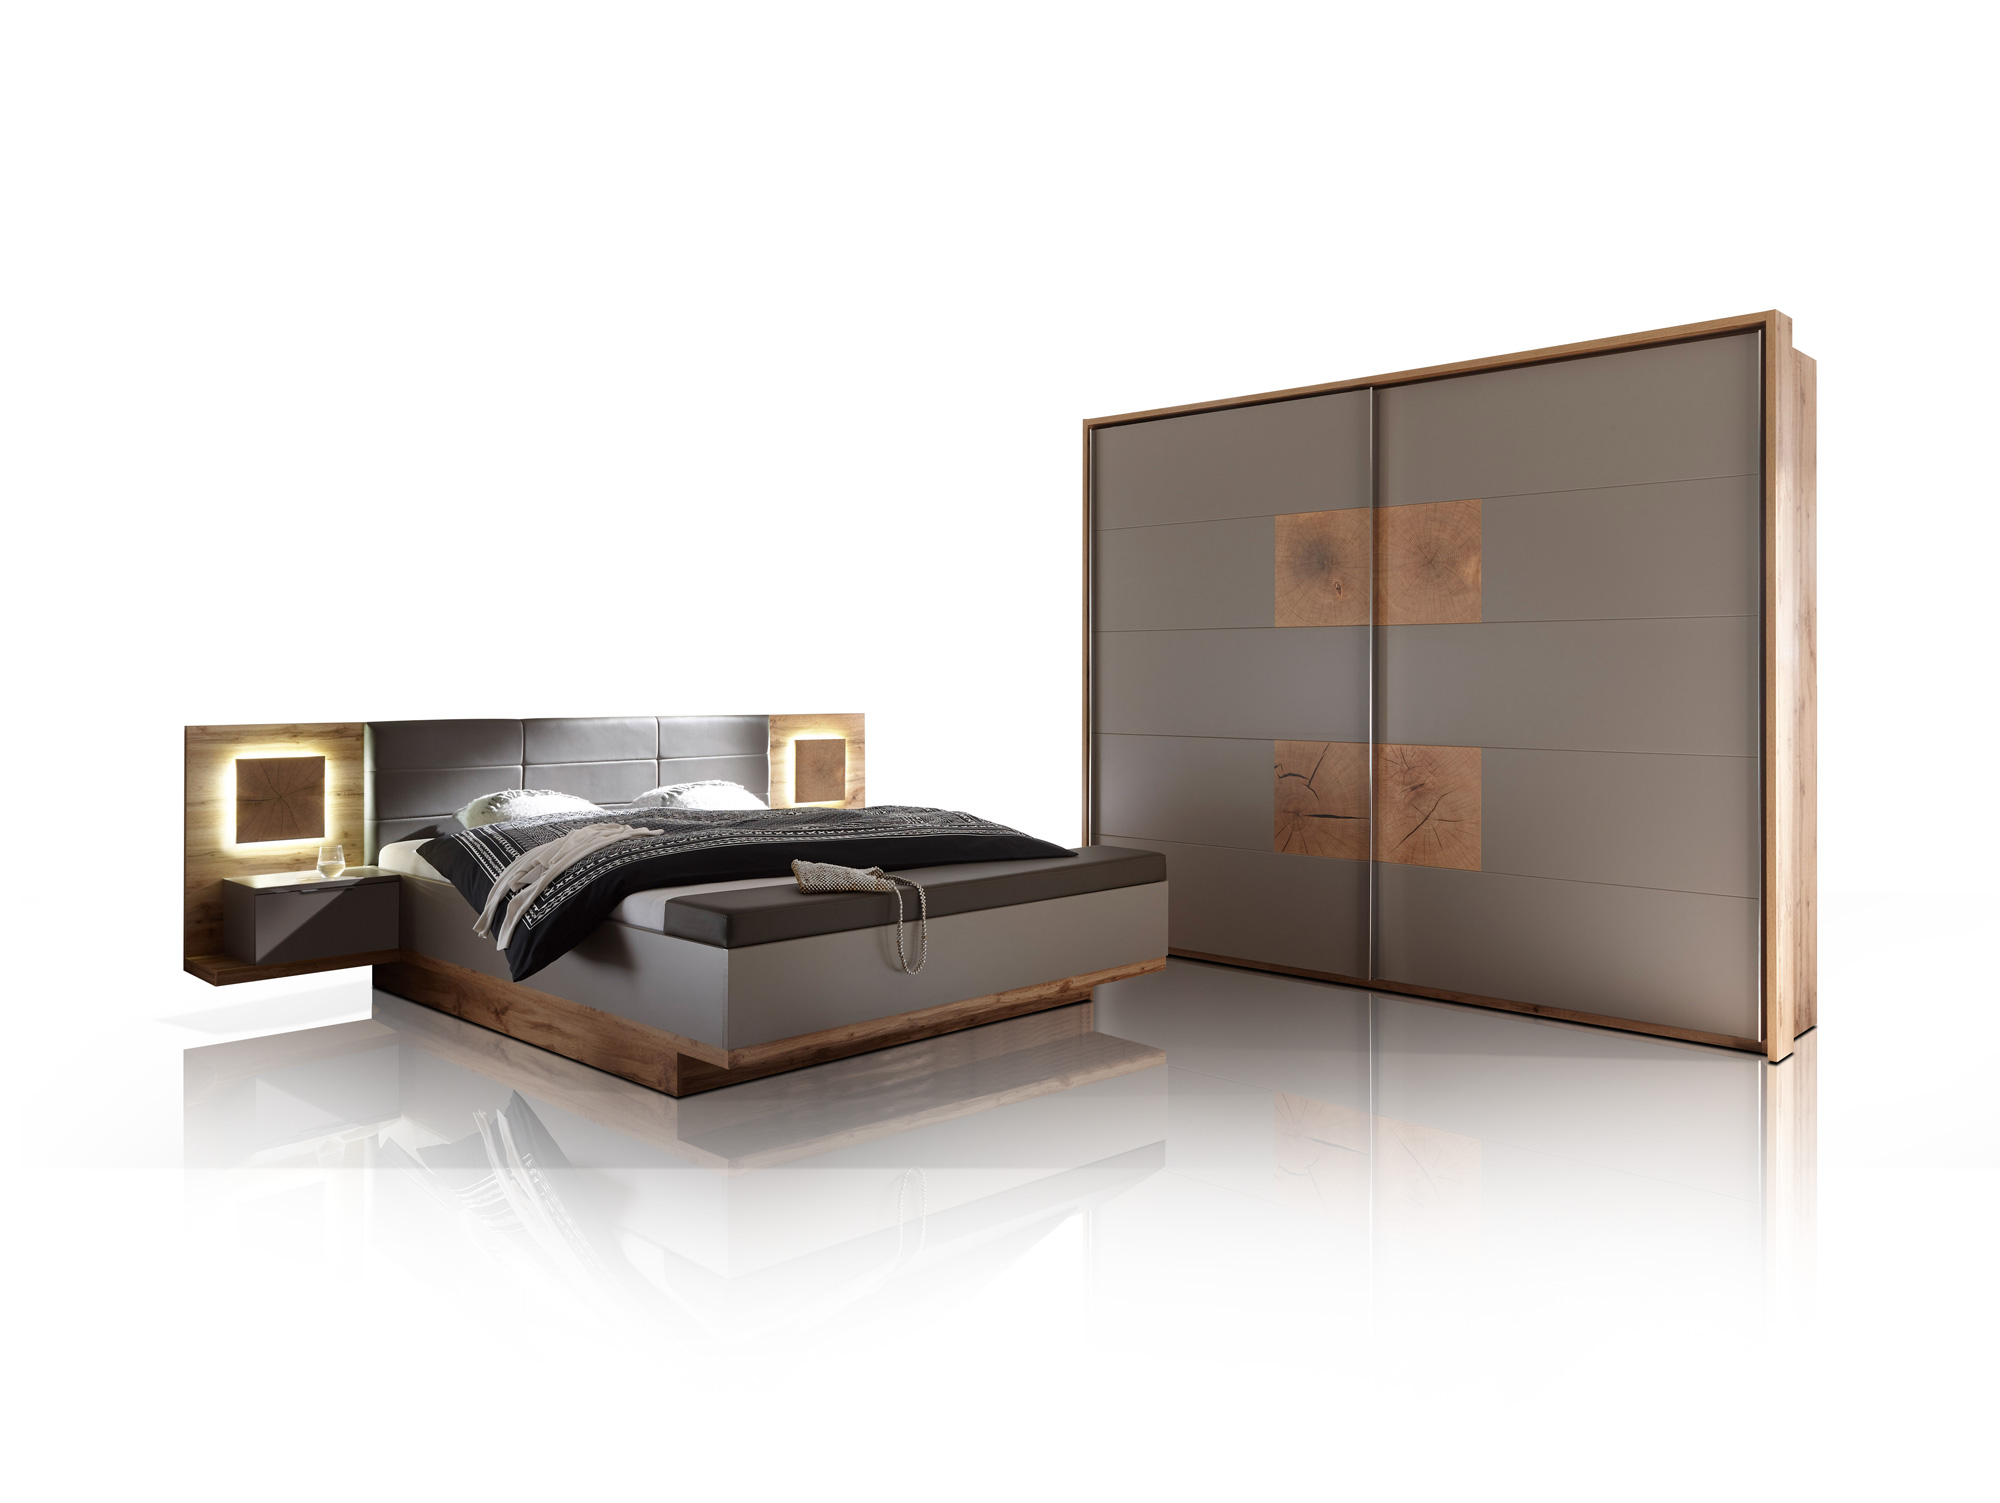 cameron i schlafzimmer inkl nakos wildeiche basaltgrau. Black Bedroom Furniture Sets. Home Design Ideas